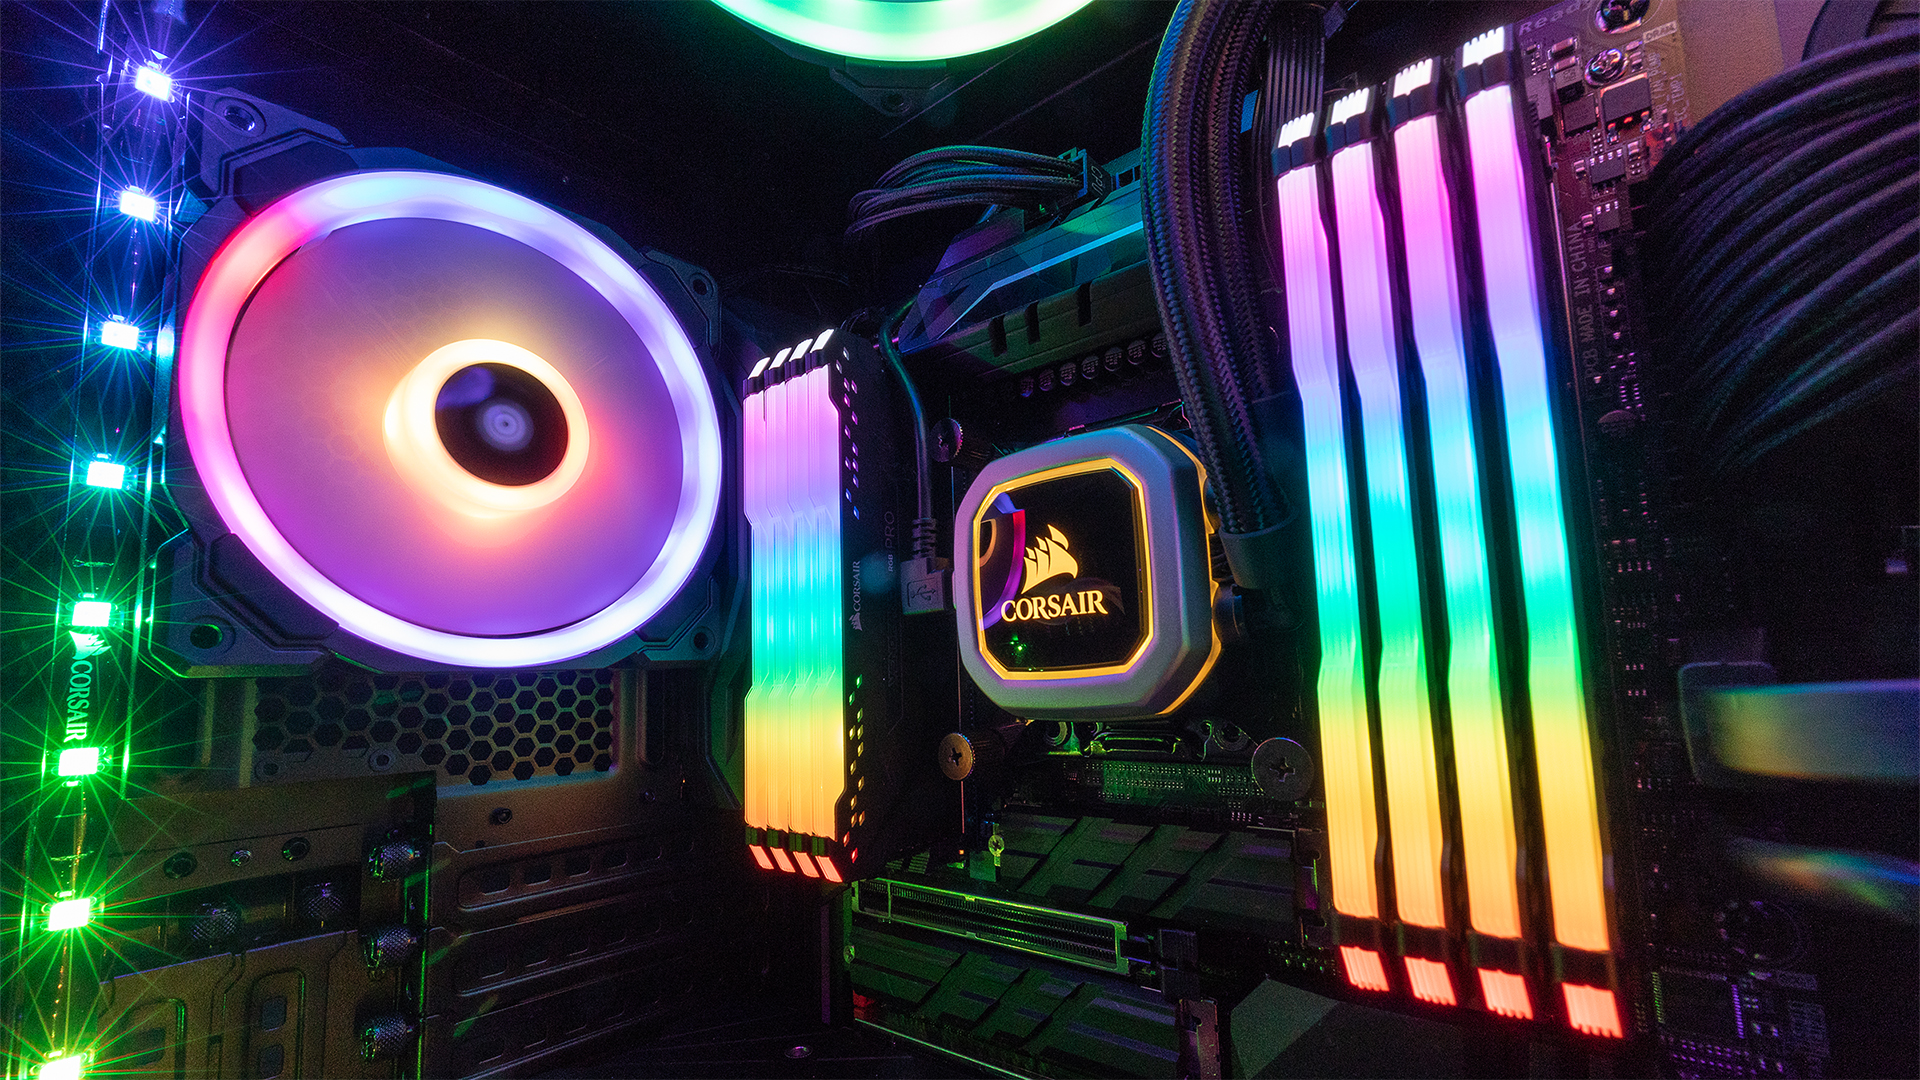 Corsair introduces true RGB memory for a completely lit setup